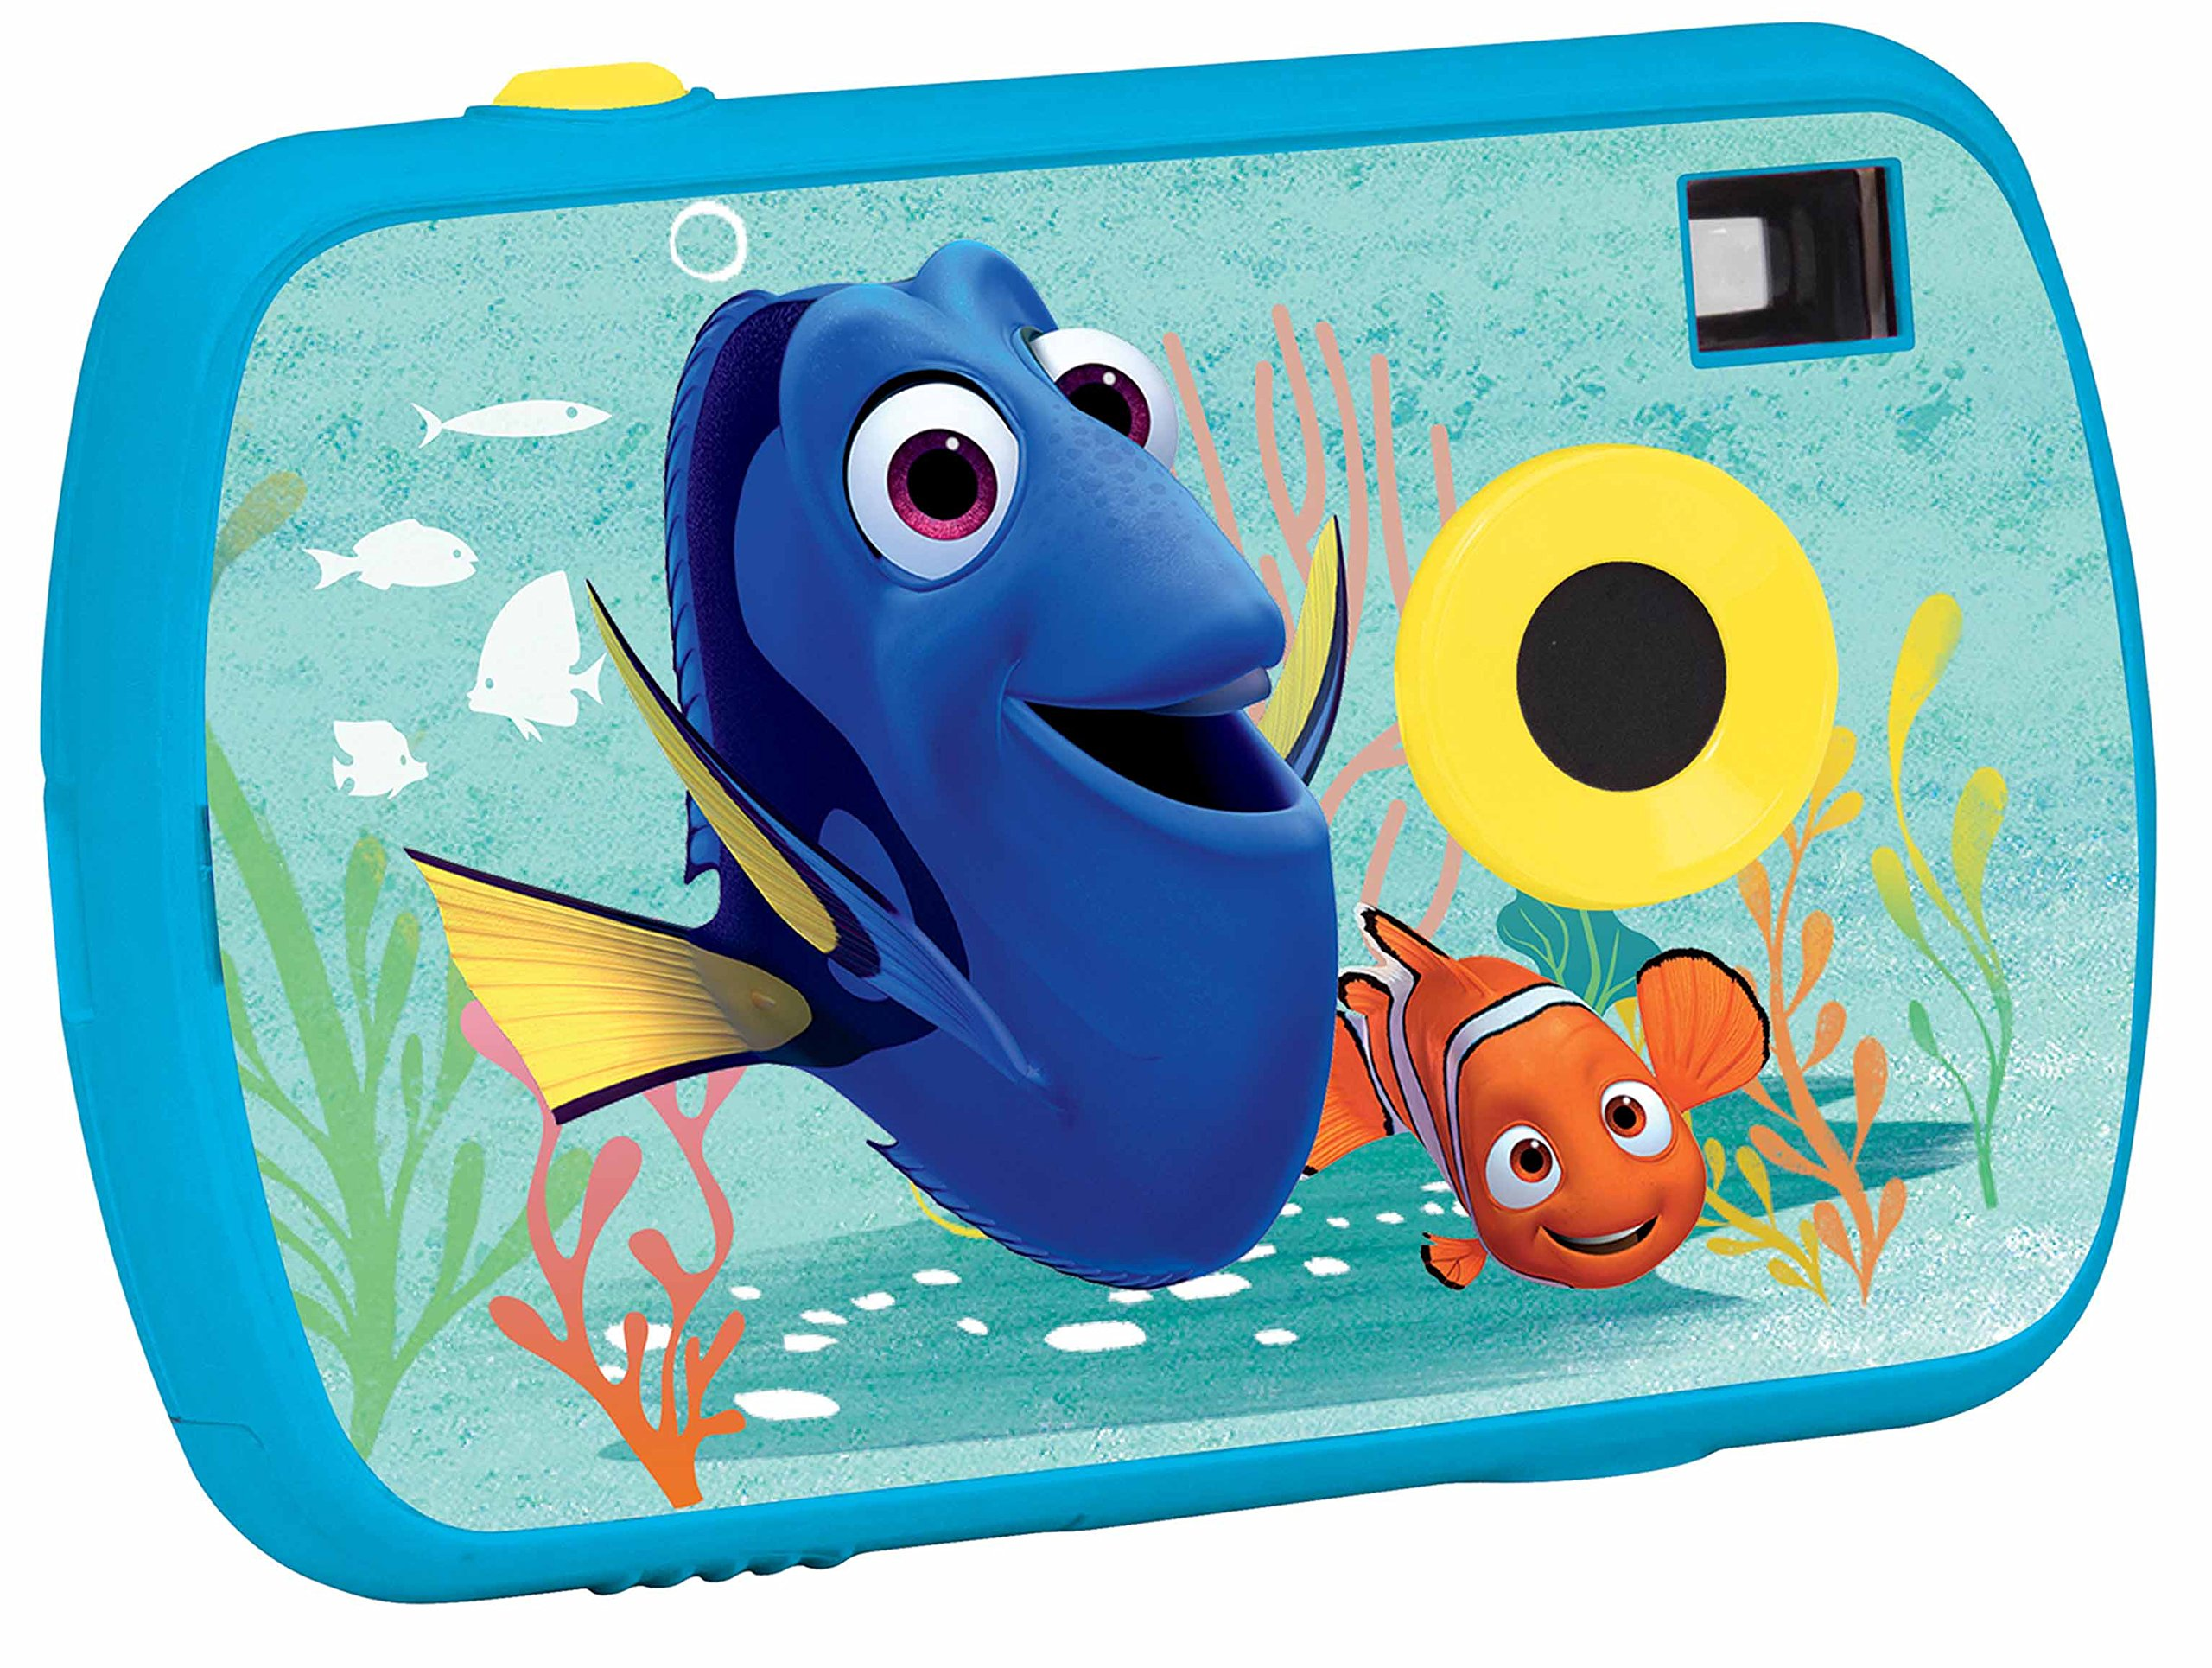 Finding Nemo Dory 1.3MP Digital Camera by Finding Dory (Image #1)